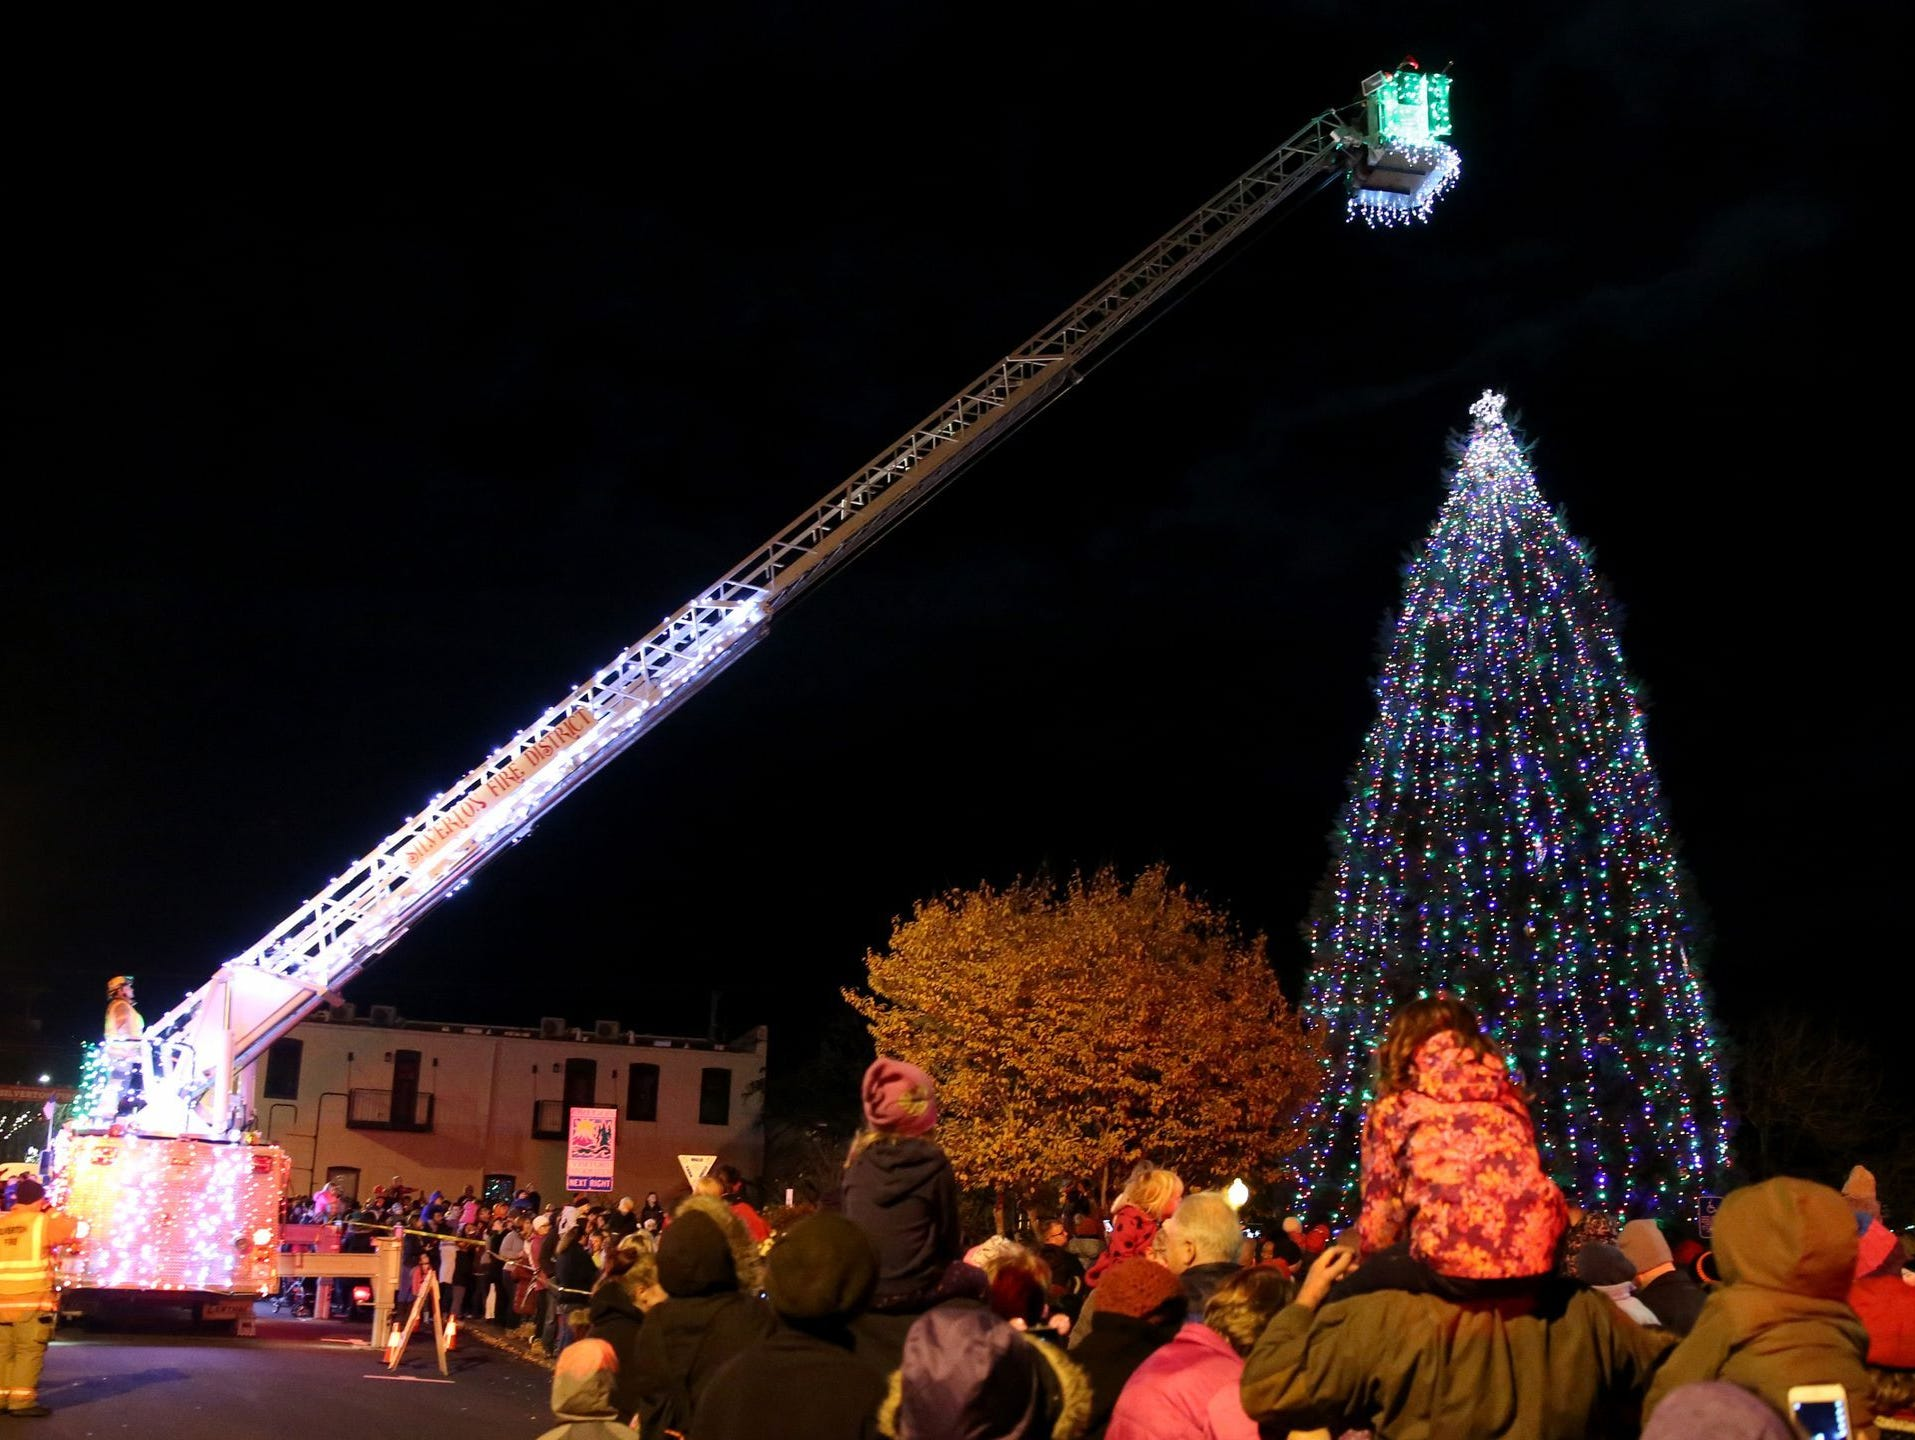 Silverton Tree Lighting at Town Square Park. Enjoy the pictures!